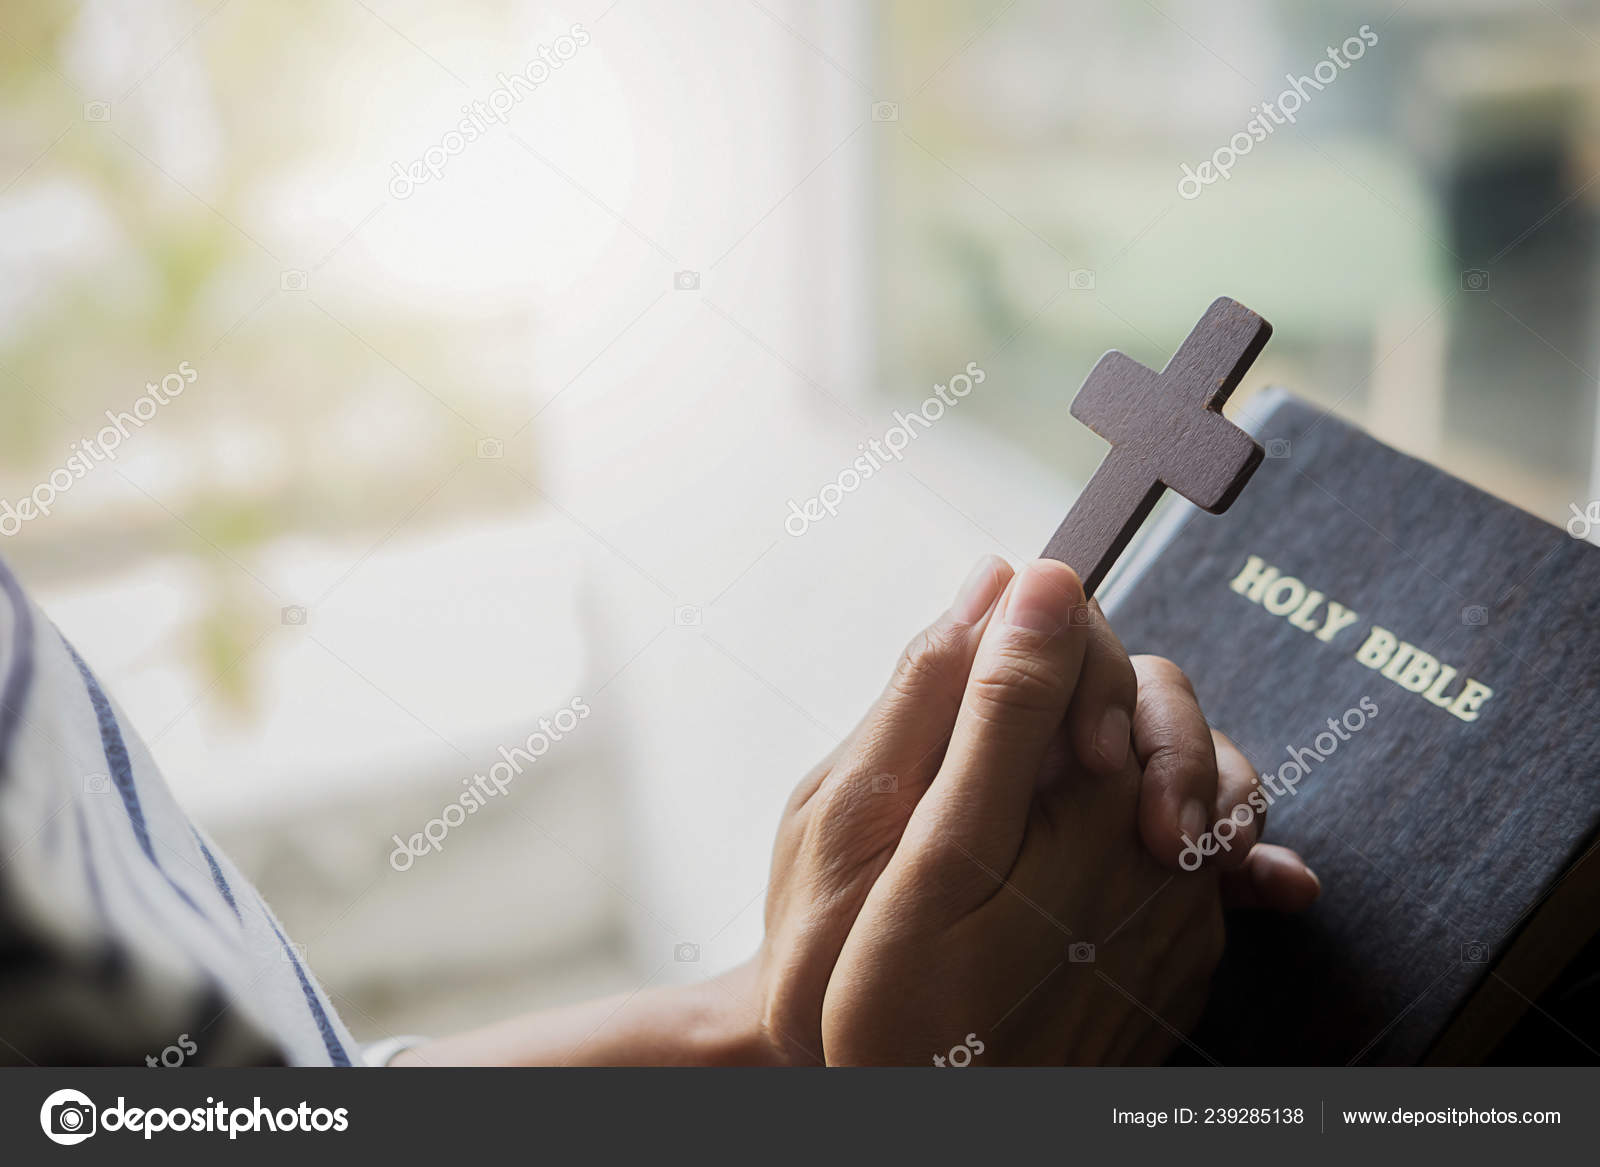 Christian Woman Praying Holy Bible Hands Folded Prayer Holy